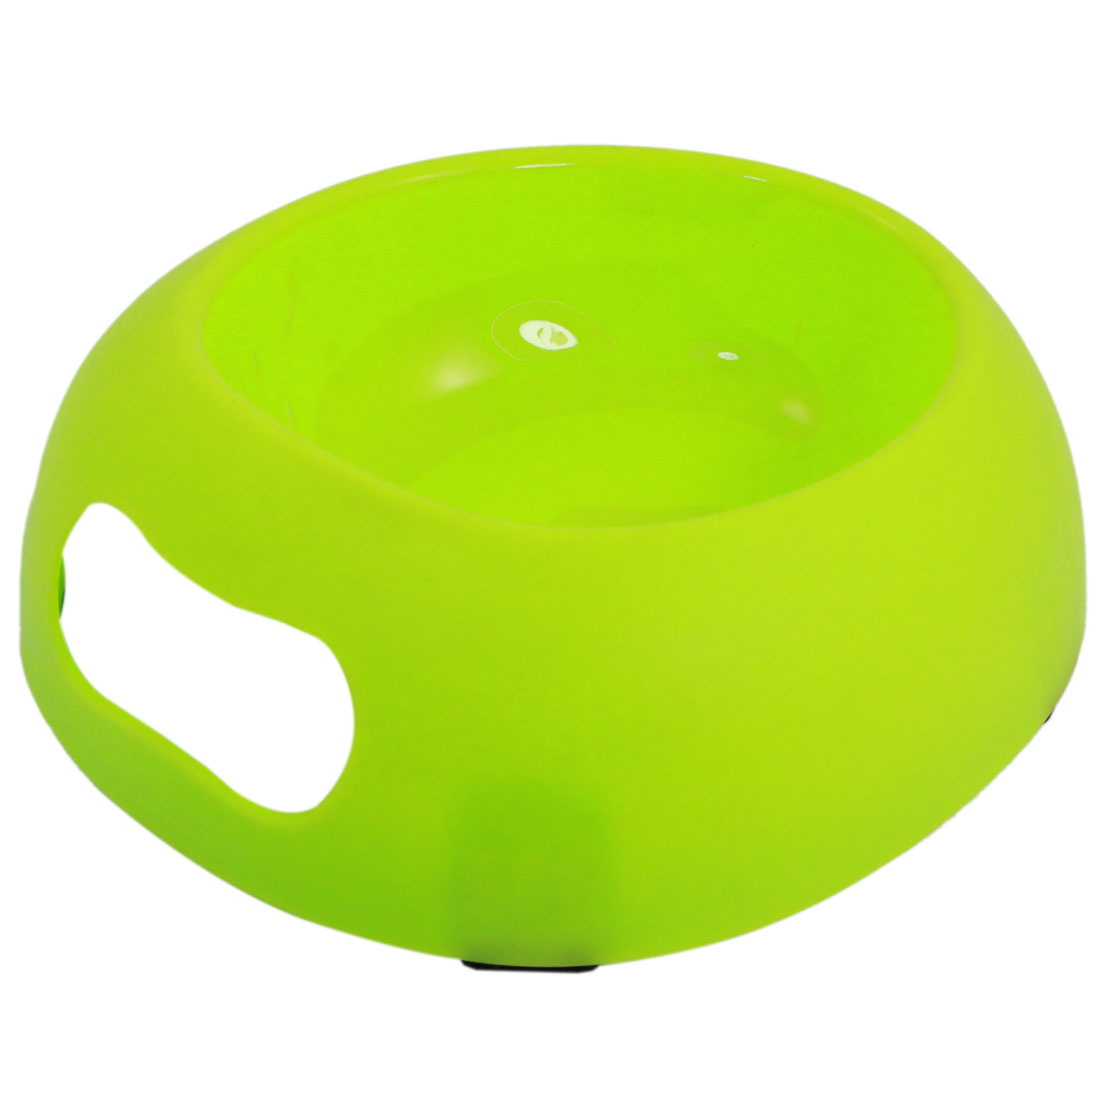 Yellow Green Plastic Egg Shape Food Water Feeder Bowl Dish for Pet Cat Dog